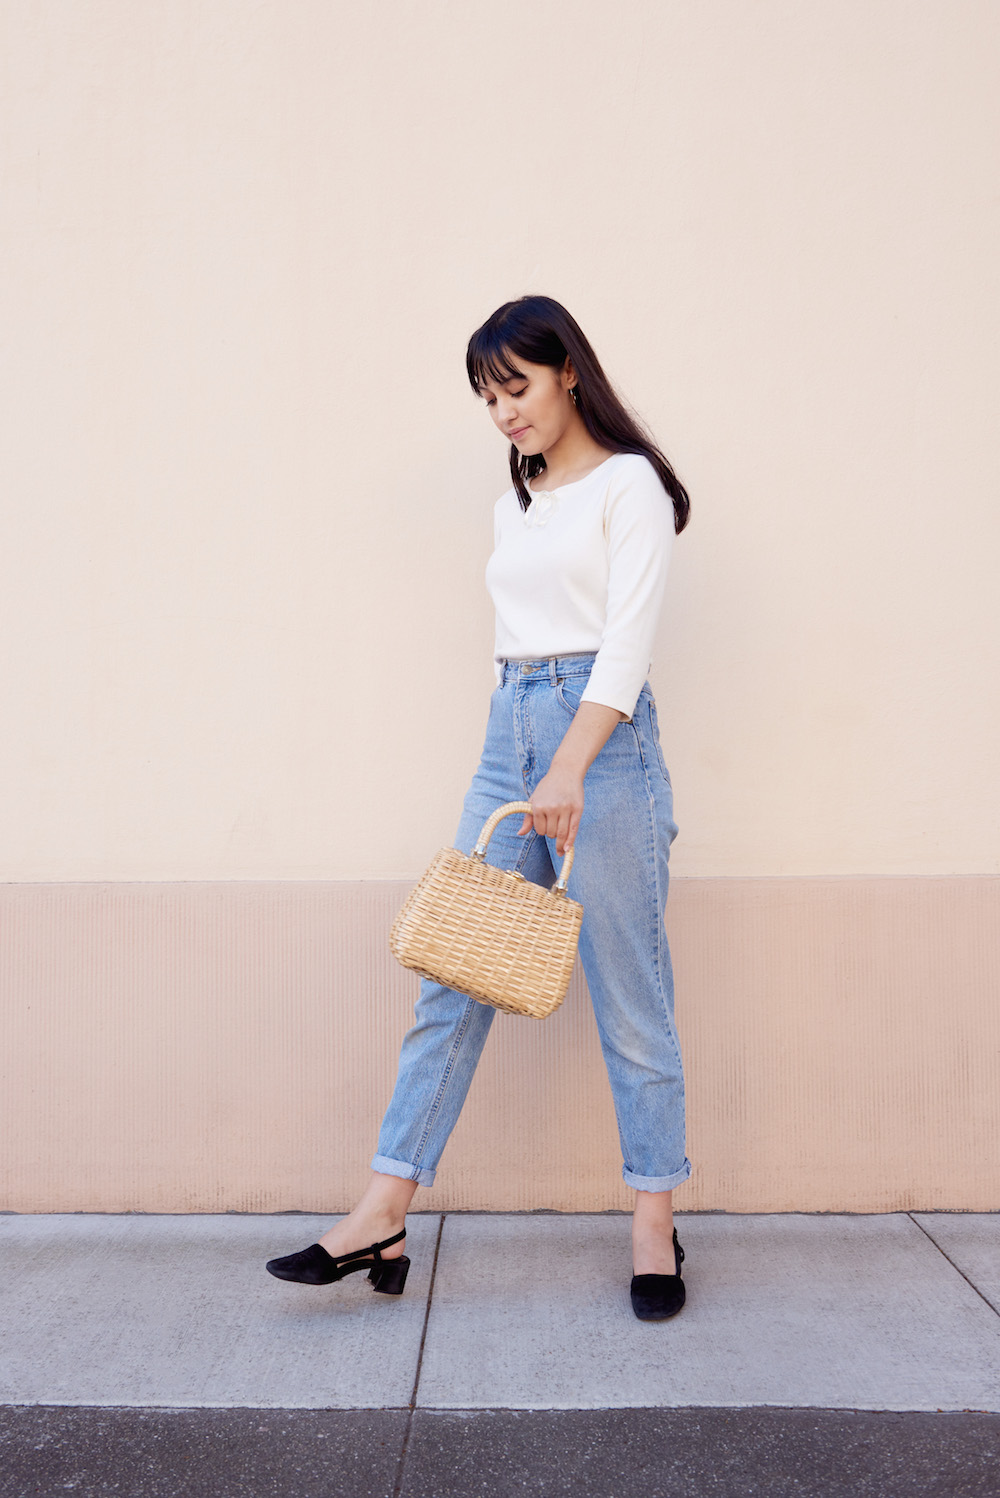 Week of Outfits: Auna Barretto-Grignoli